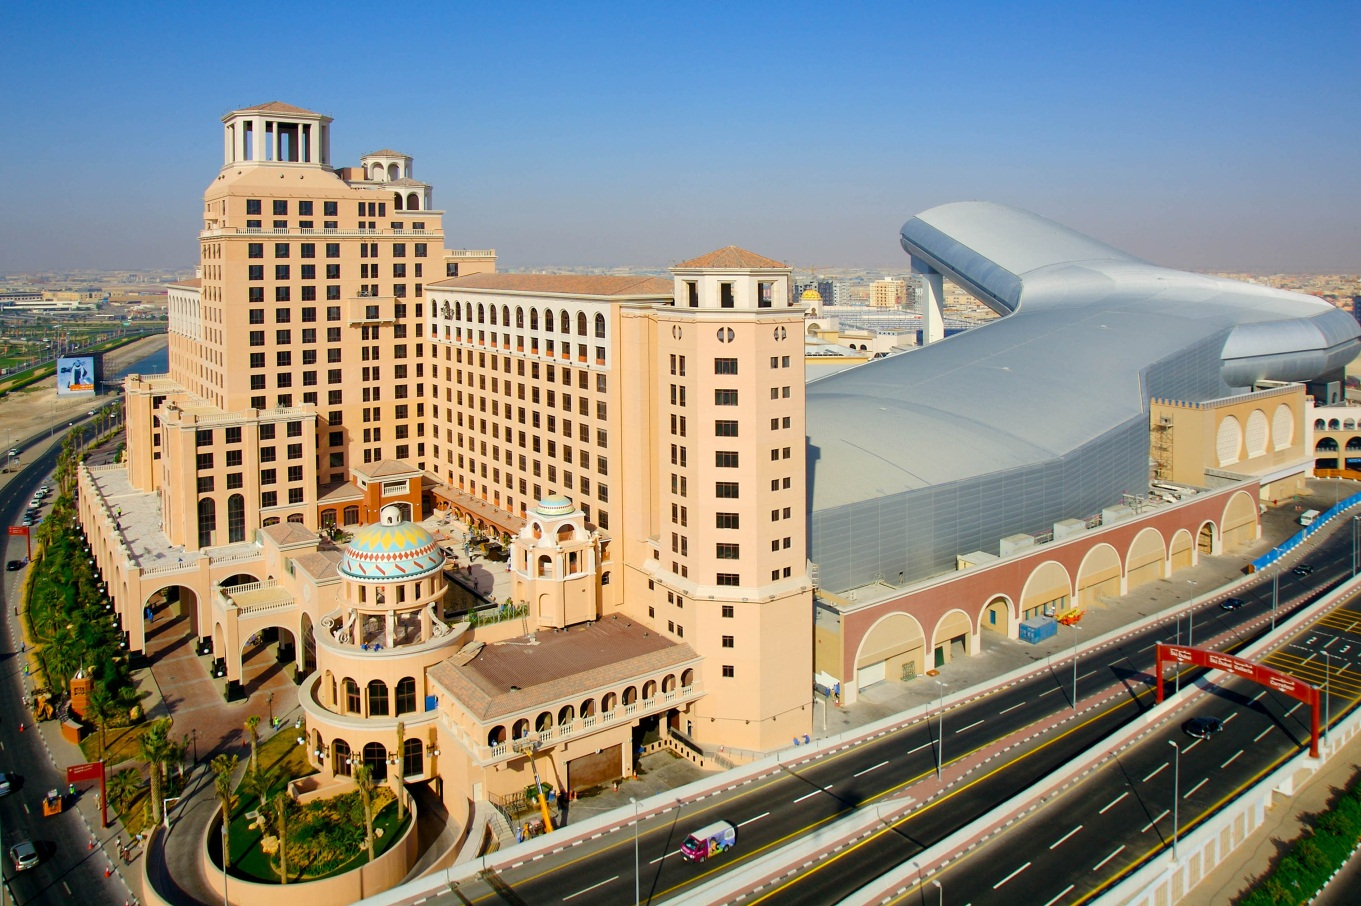 Description: Emirates Mall